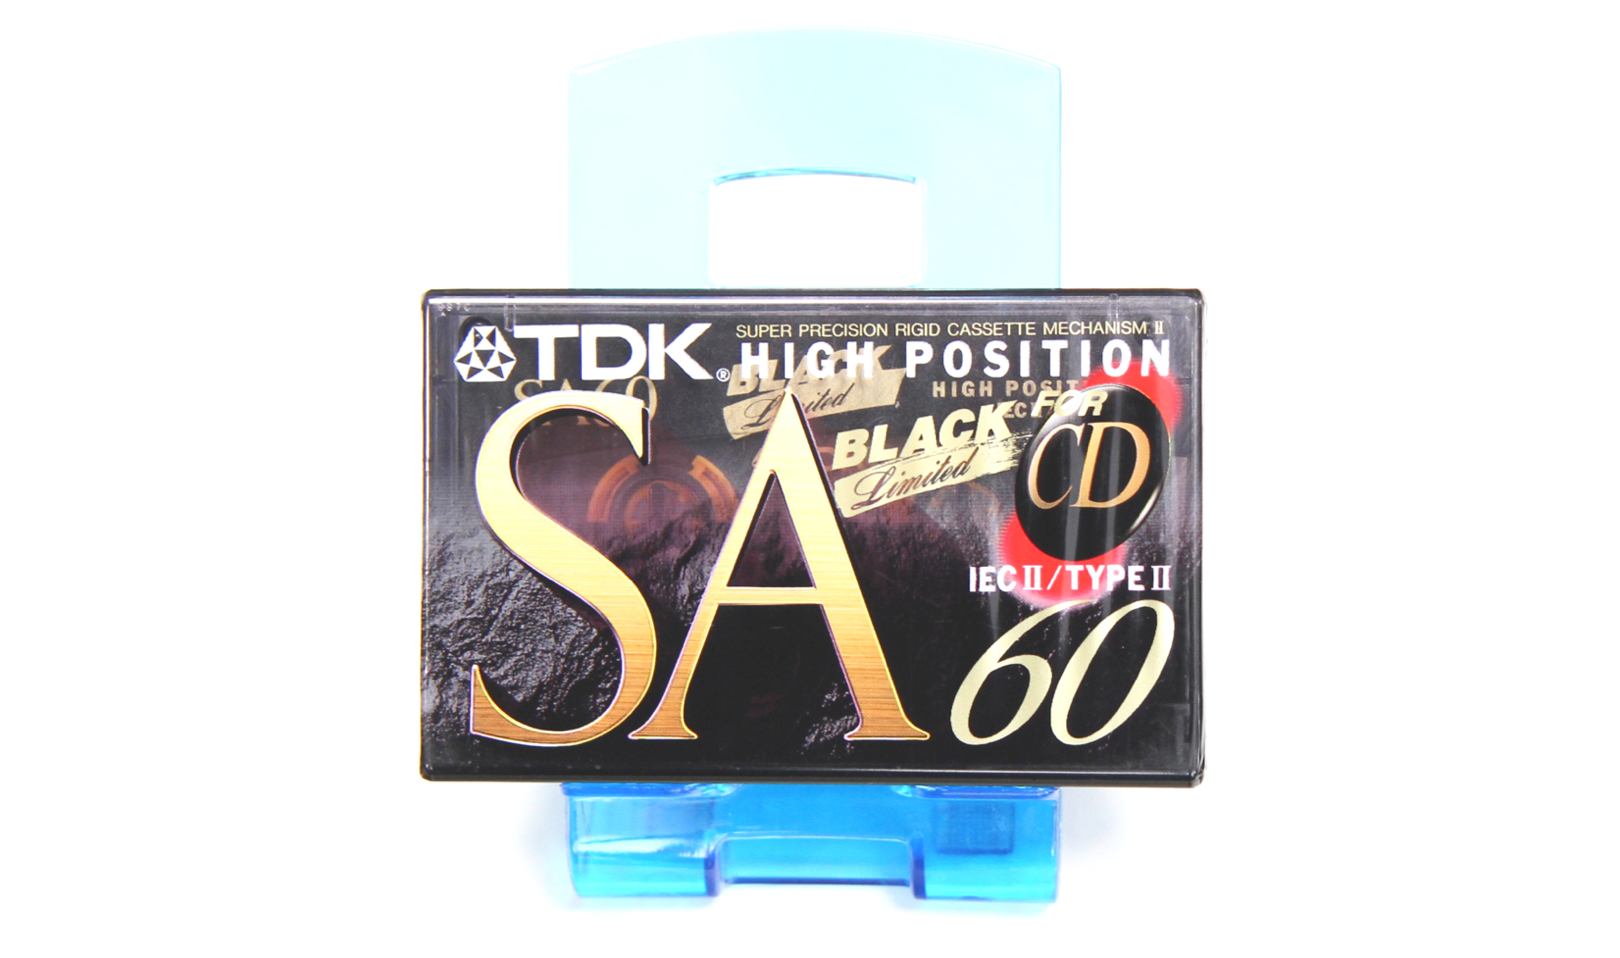 TDK SA-60 Black Limited